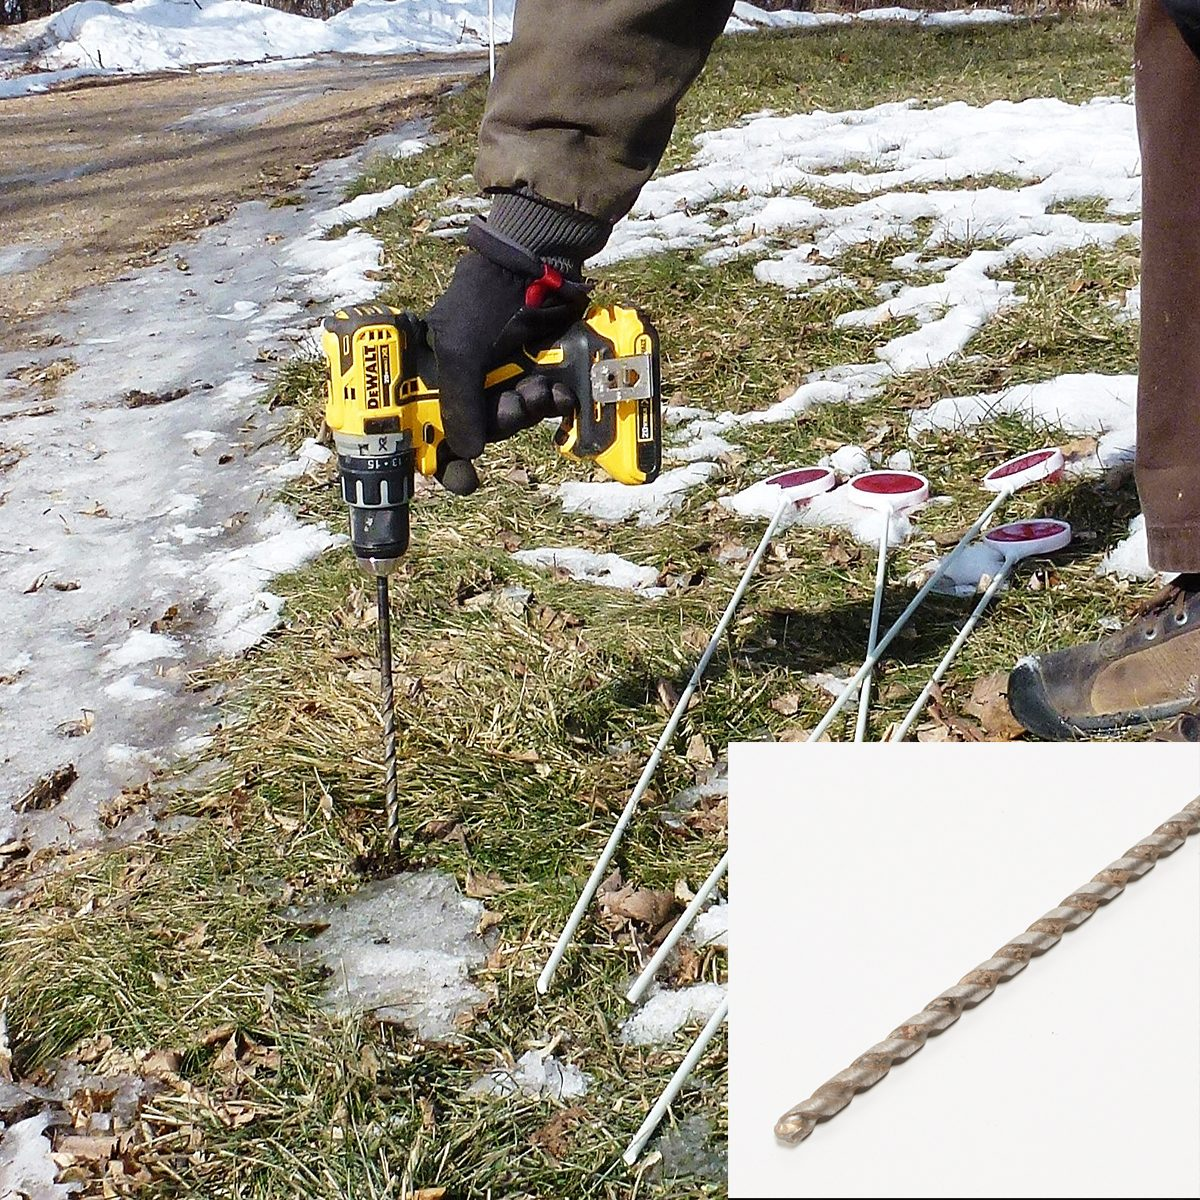 Drilling into frozen ground so posts can be planted | Construction Pro Tips